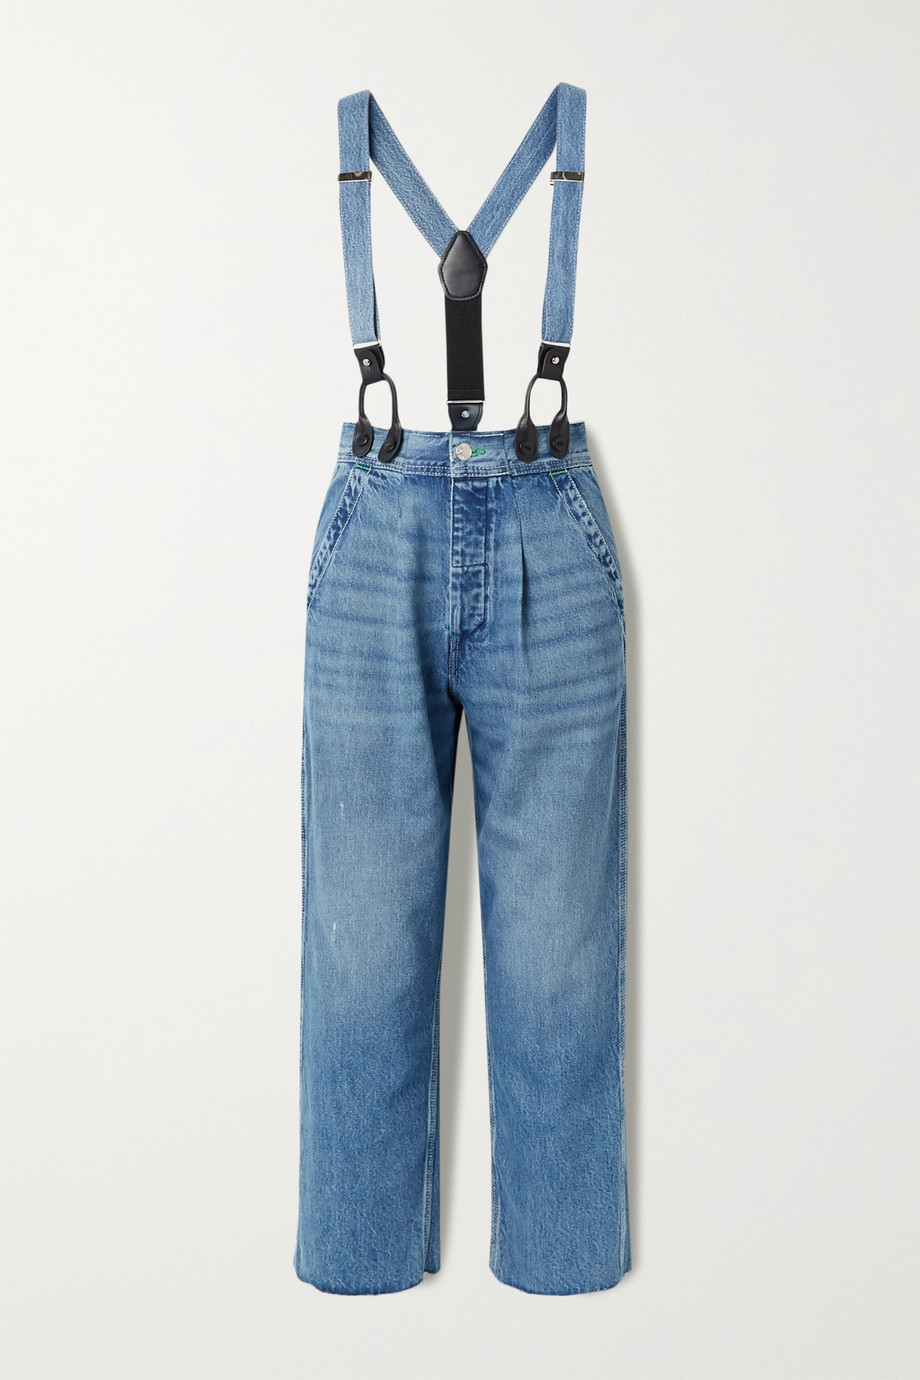 RE/DONE + Hikari Mori high-rise wide-leg jeans with braces